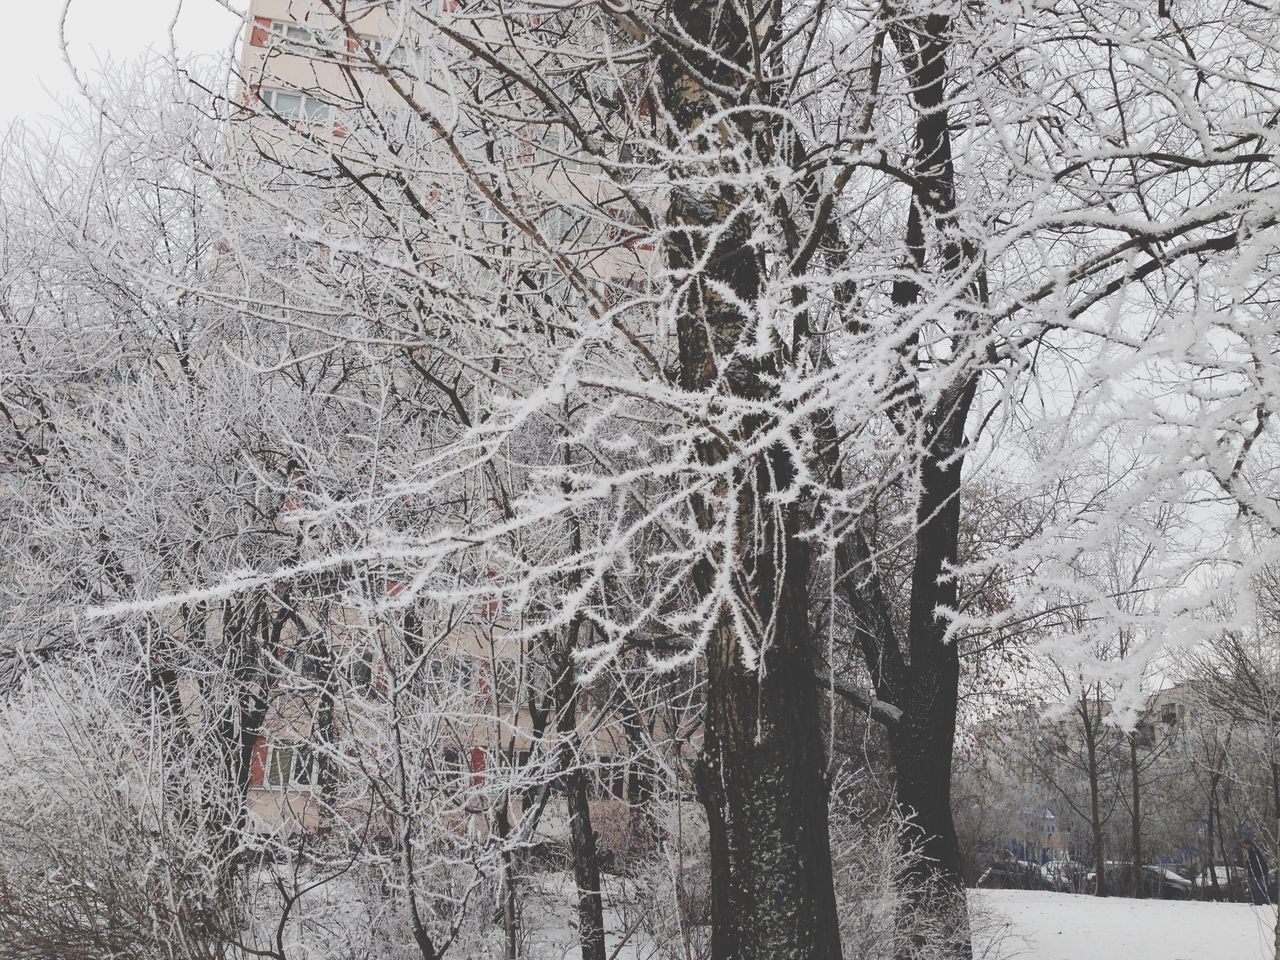 Tree Branch Low Angle View Winter No People Beauty In Nature Snow Hoarfrost White Bare Tree